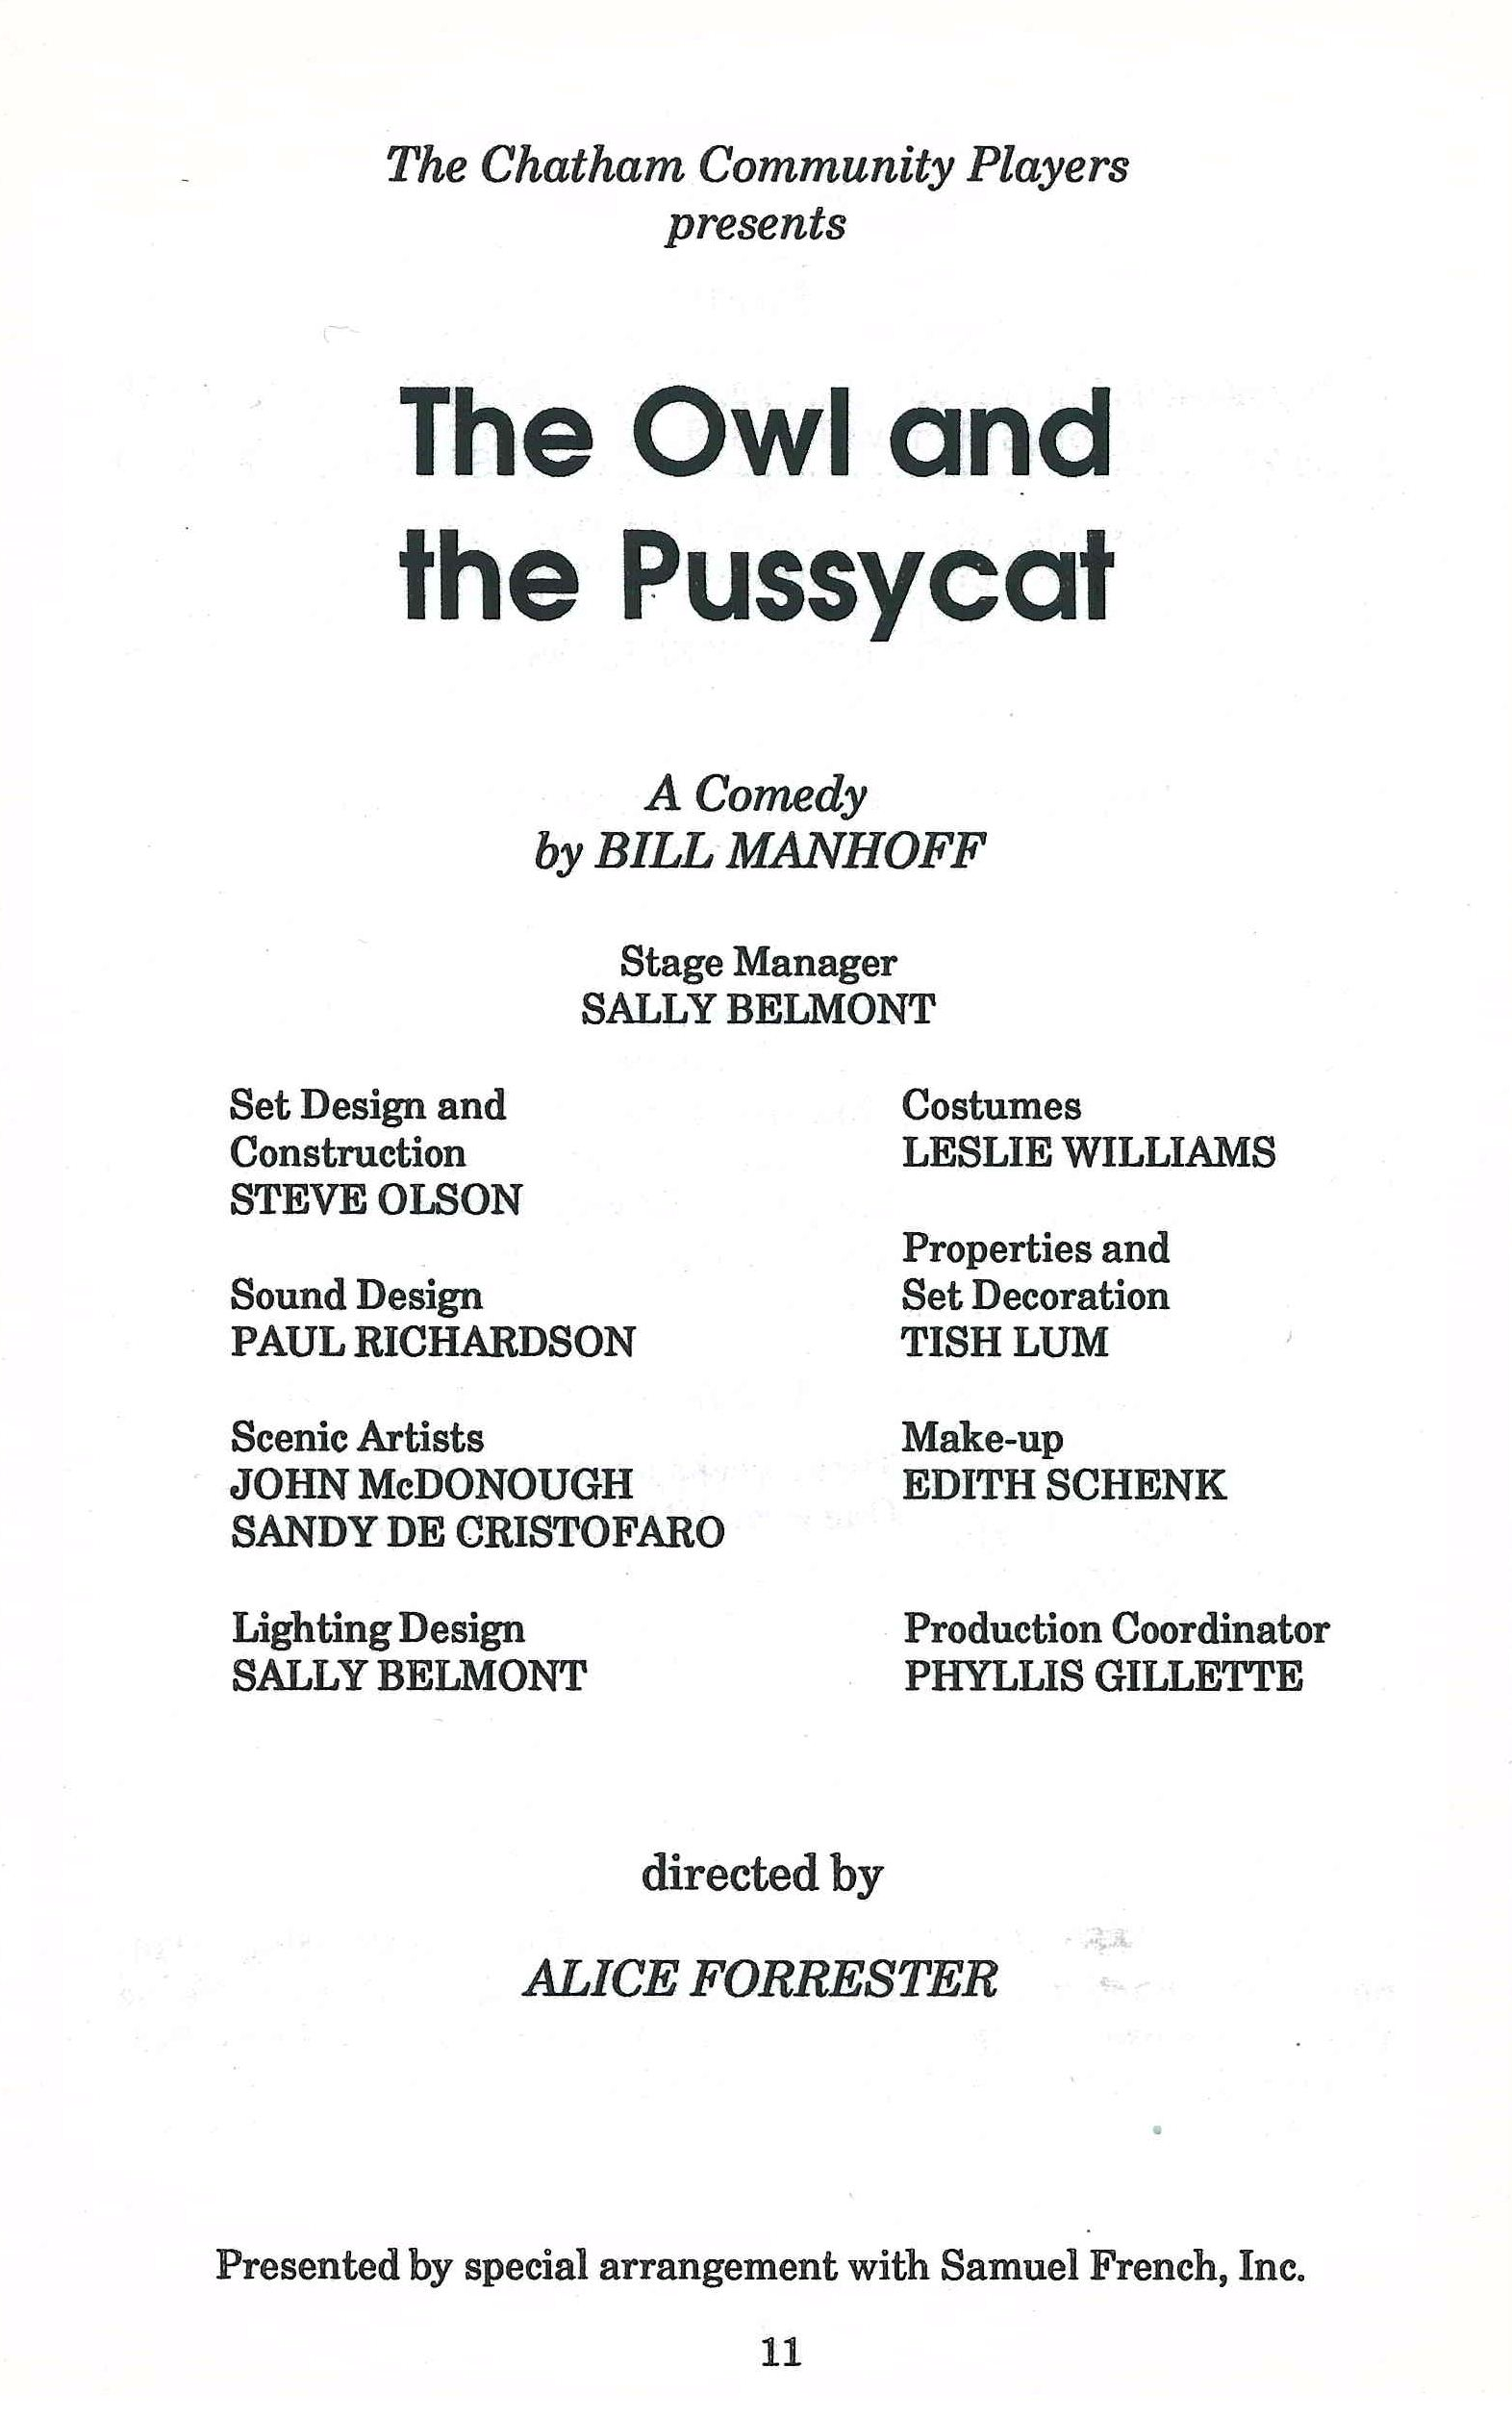 The Owl and the Pussycat (1988)